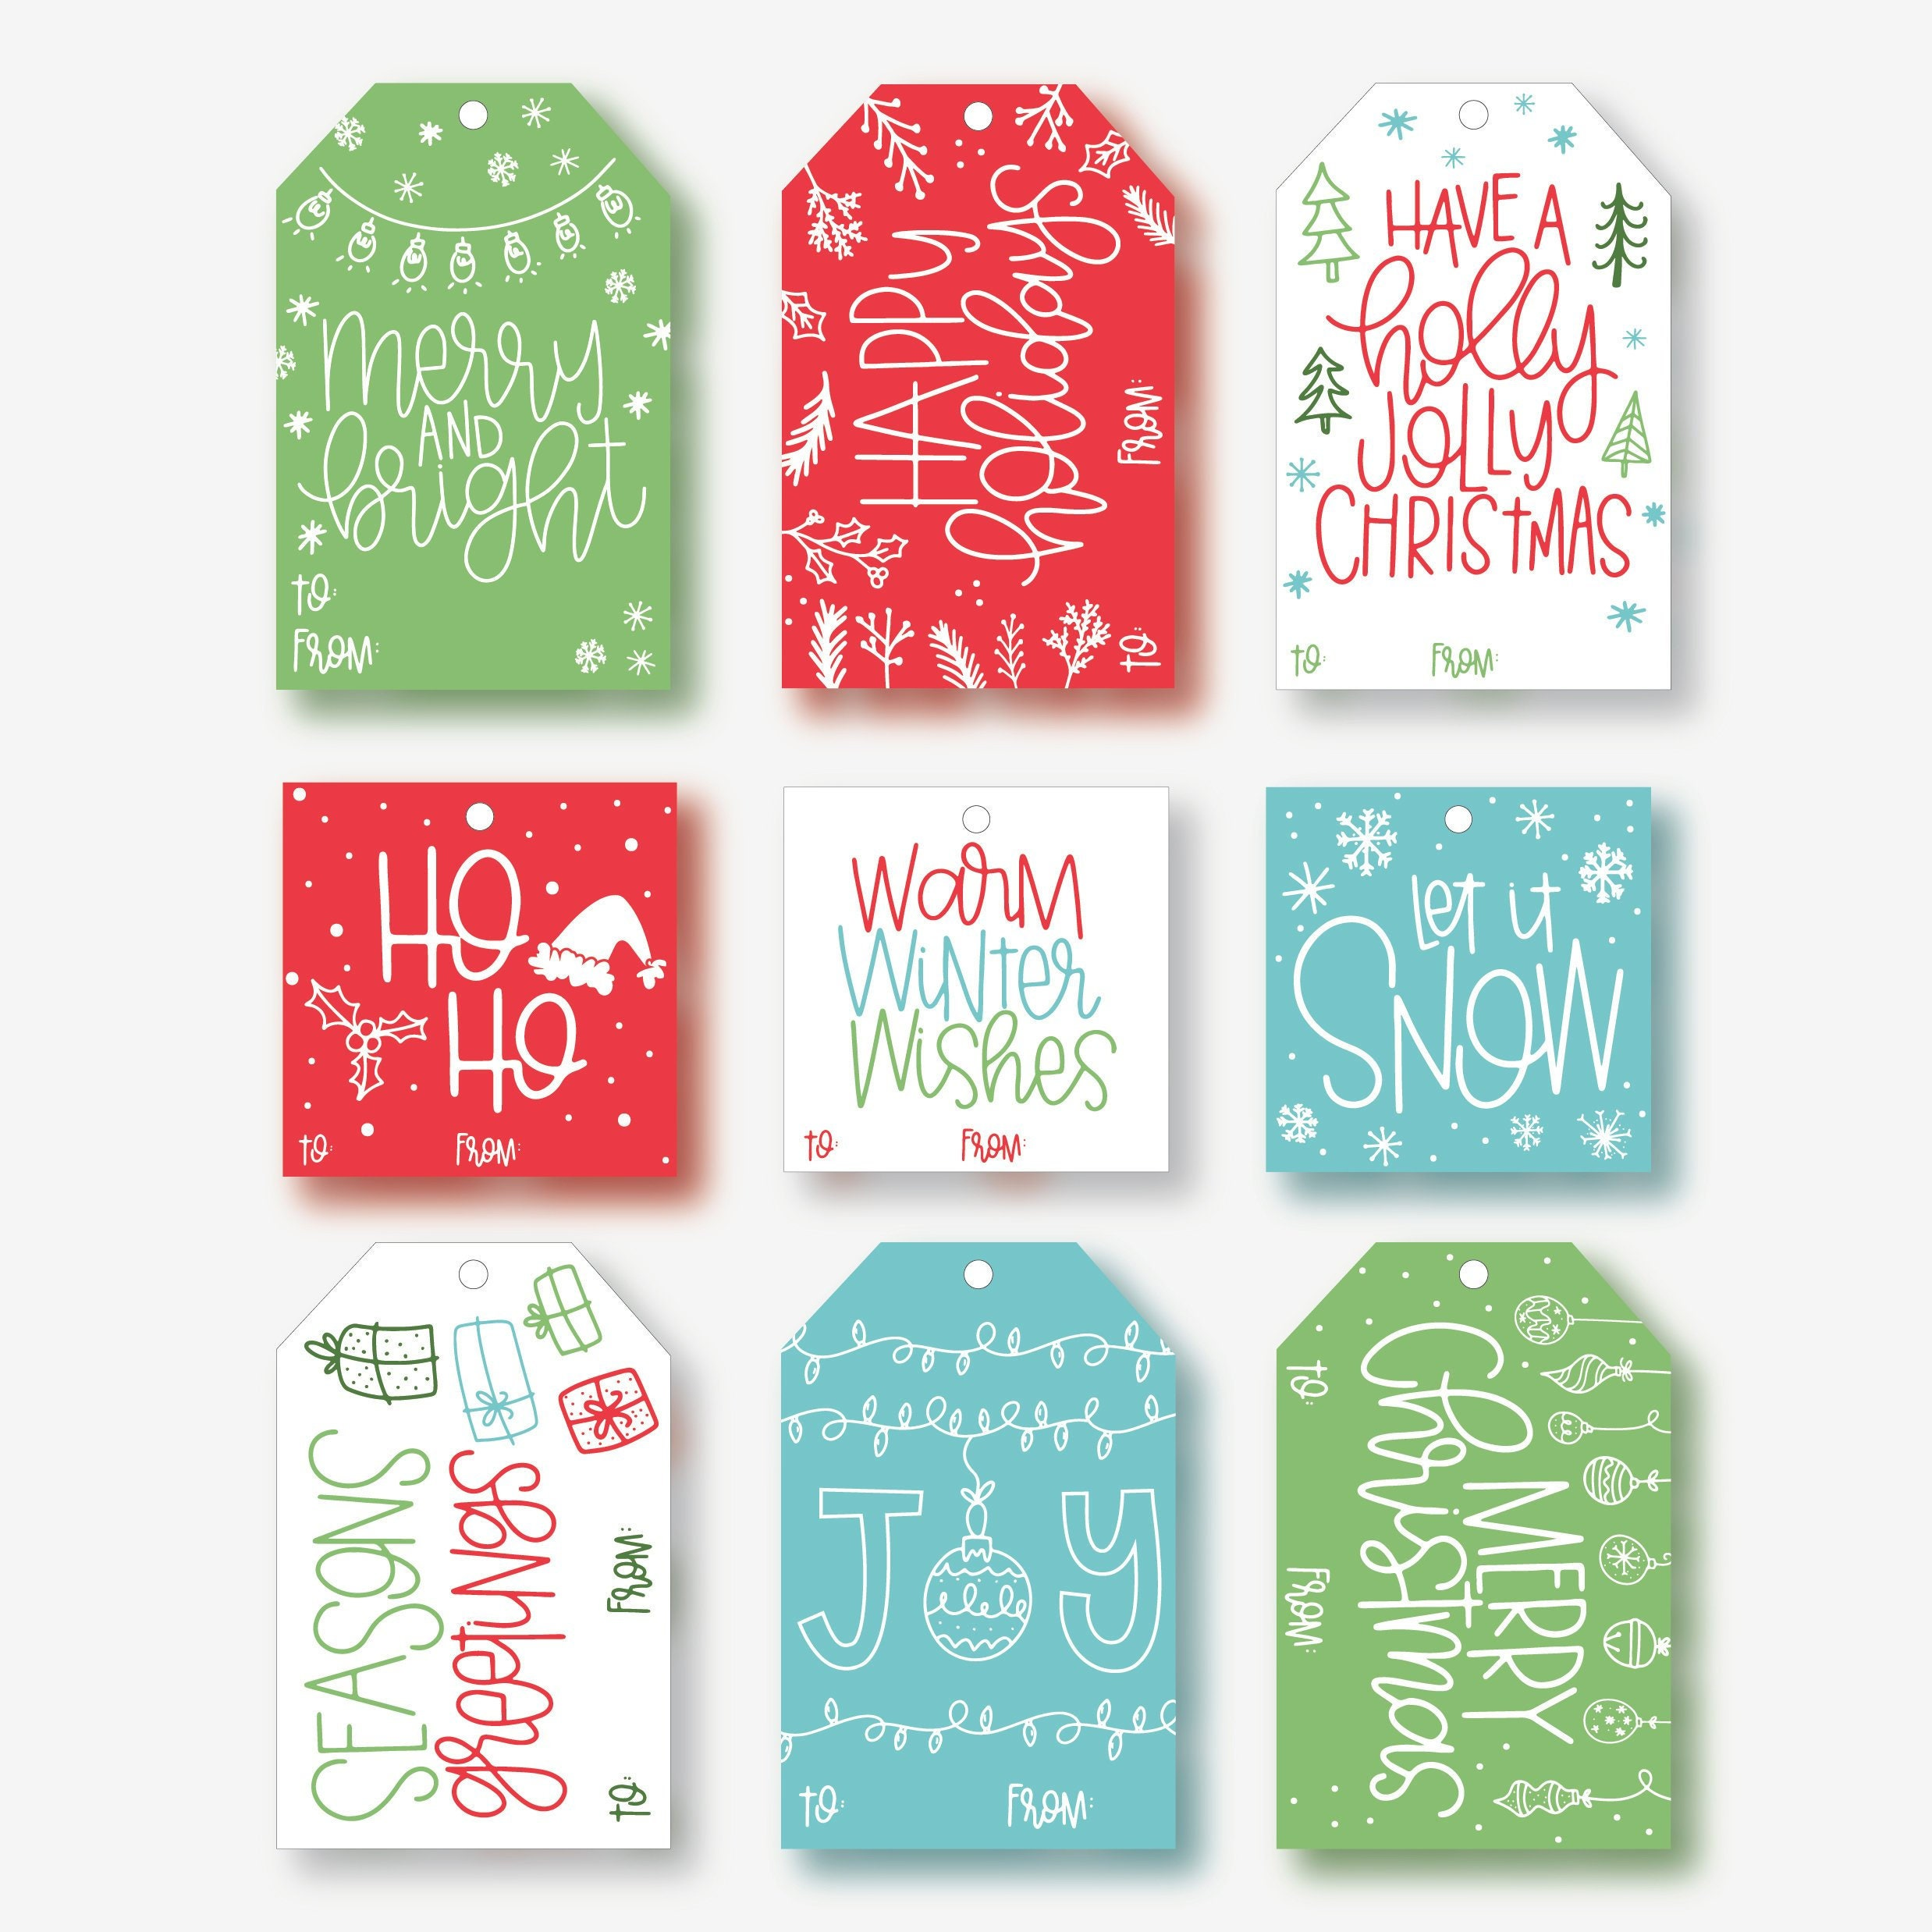 picture regarding Printable Christmas Tags Template named Trip Reward Tags Template - Printable Xmas Tags, Merry Xmas Tags, Dimensional Present Tags, Xmas Display Labels, Christmas Reward Tags